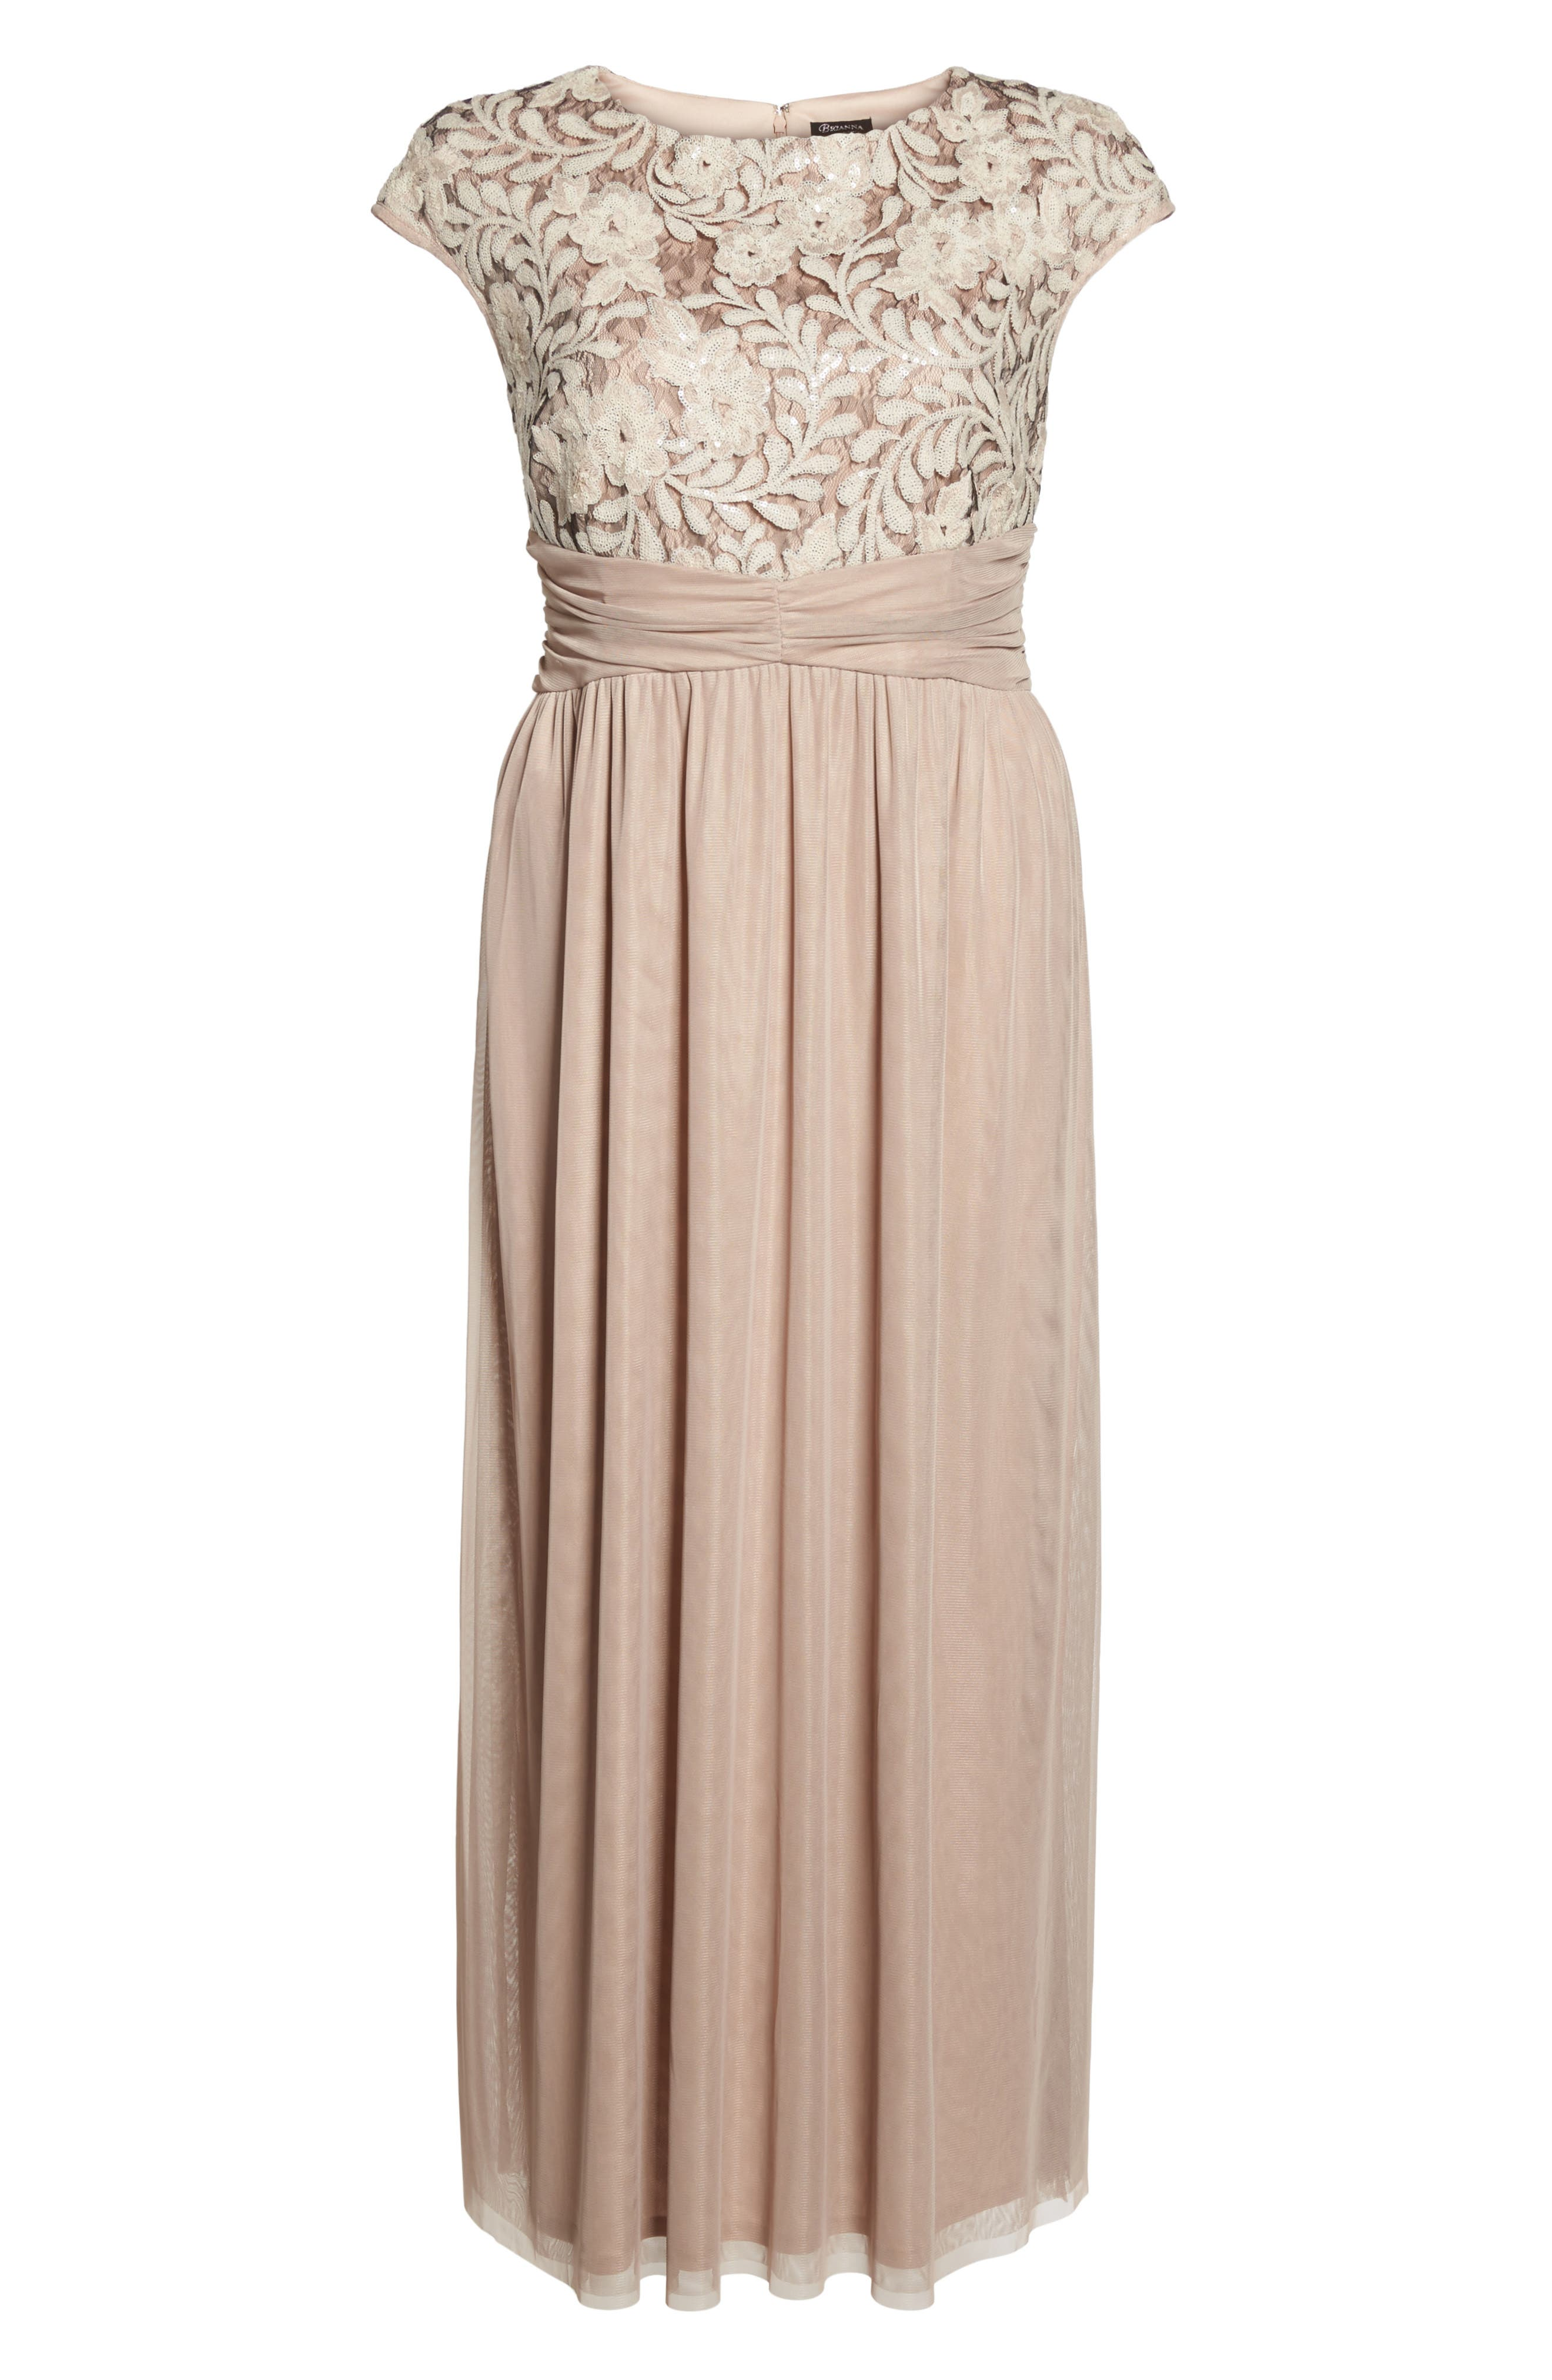 Embellished Cap Sleeve Gown,                             Alternate thumbnail 6, color,                             Champagne